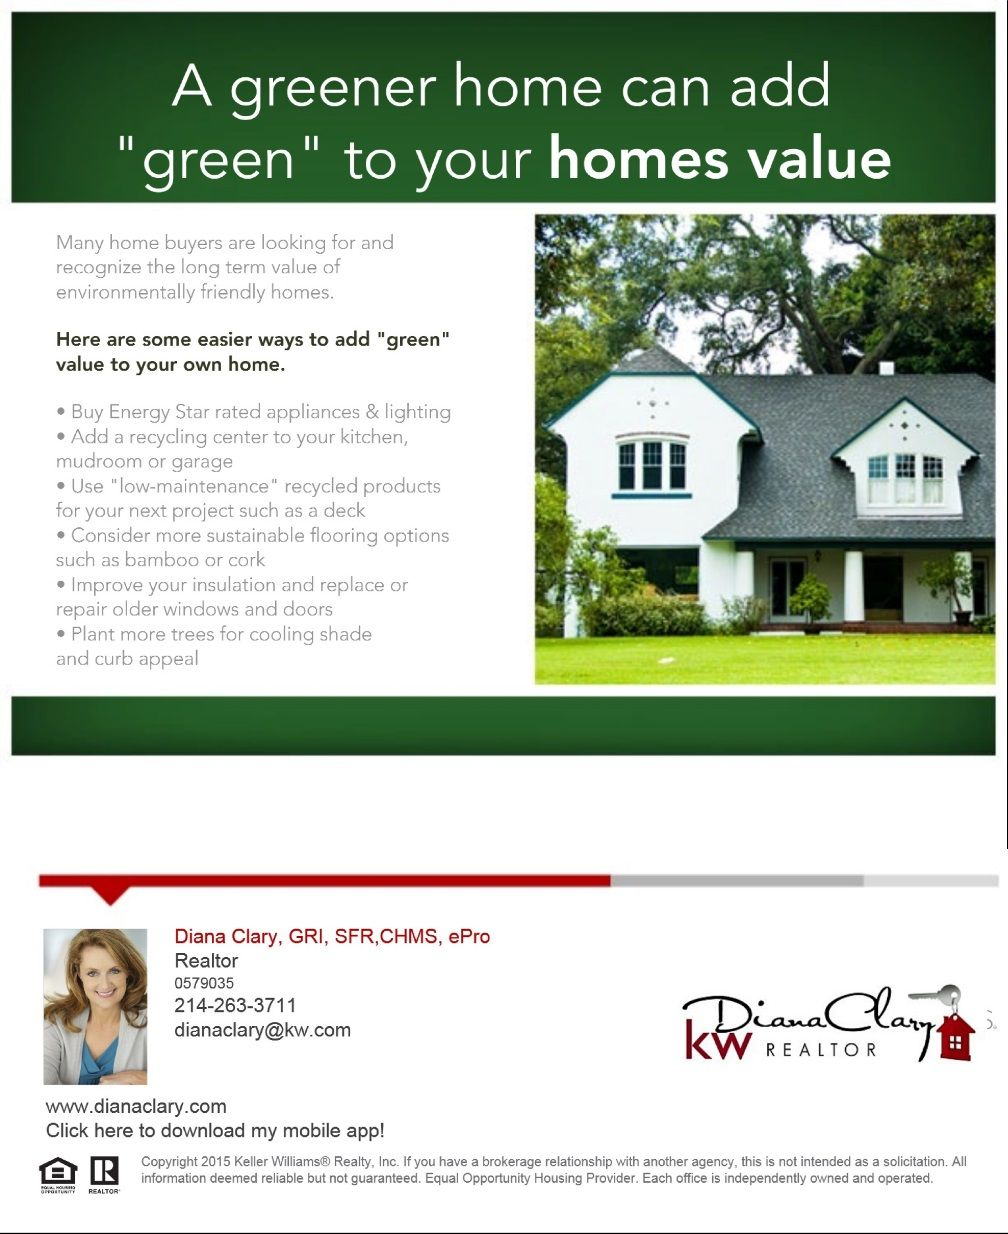 Keller Williams Log Into The Vision Administration System Home Buying Home Selling Tips Home Values